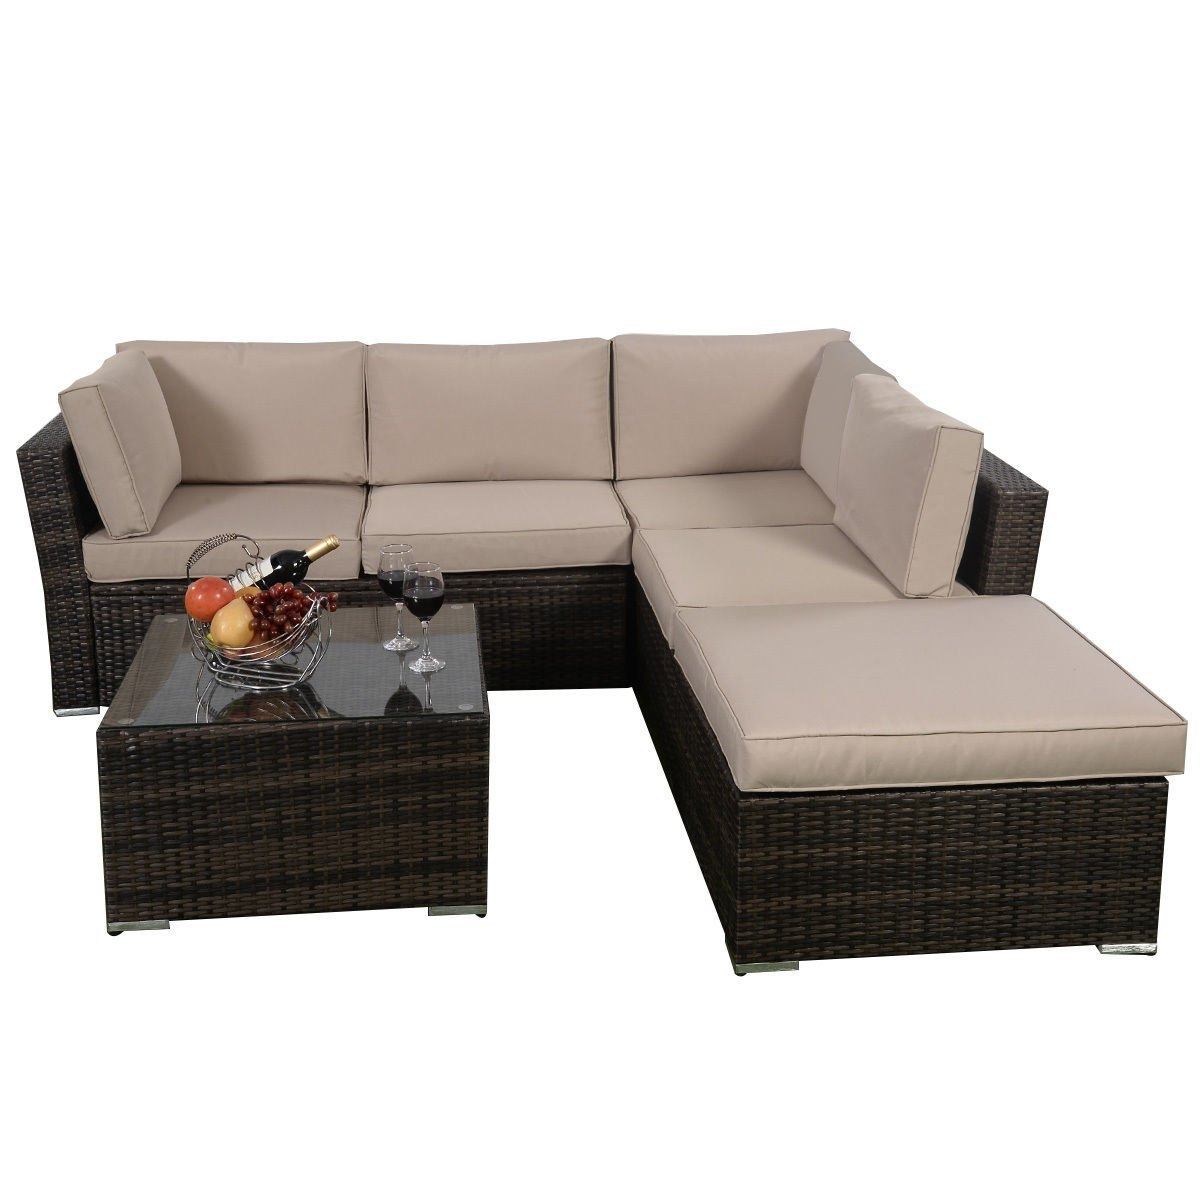 Patio Sofas Amazon With 10 Piece Sectional Sofa (View 6 of 15)